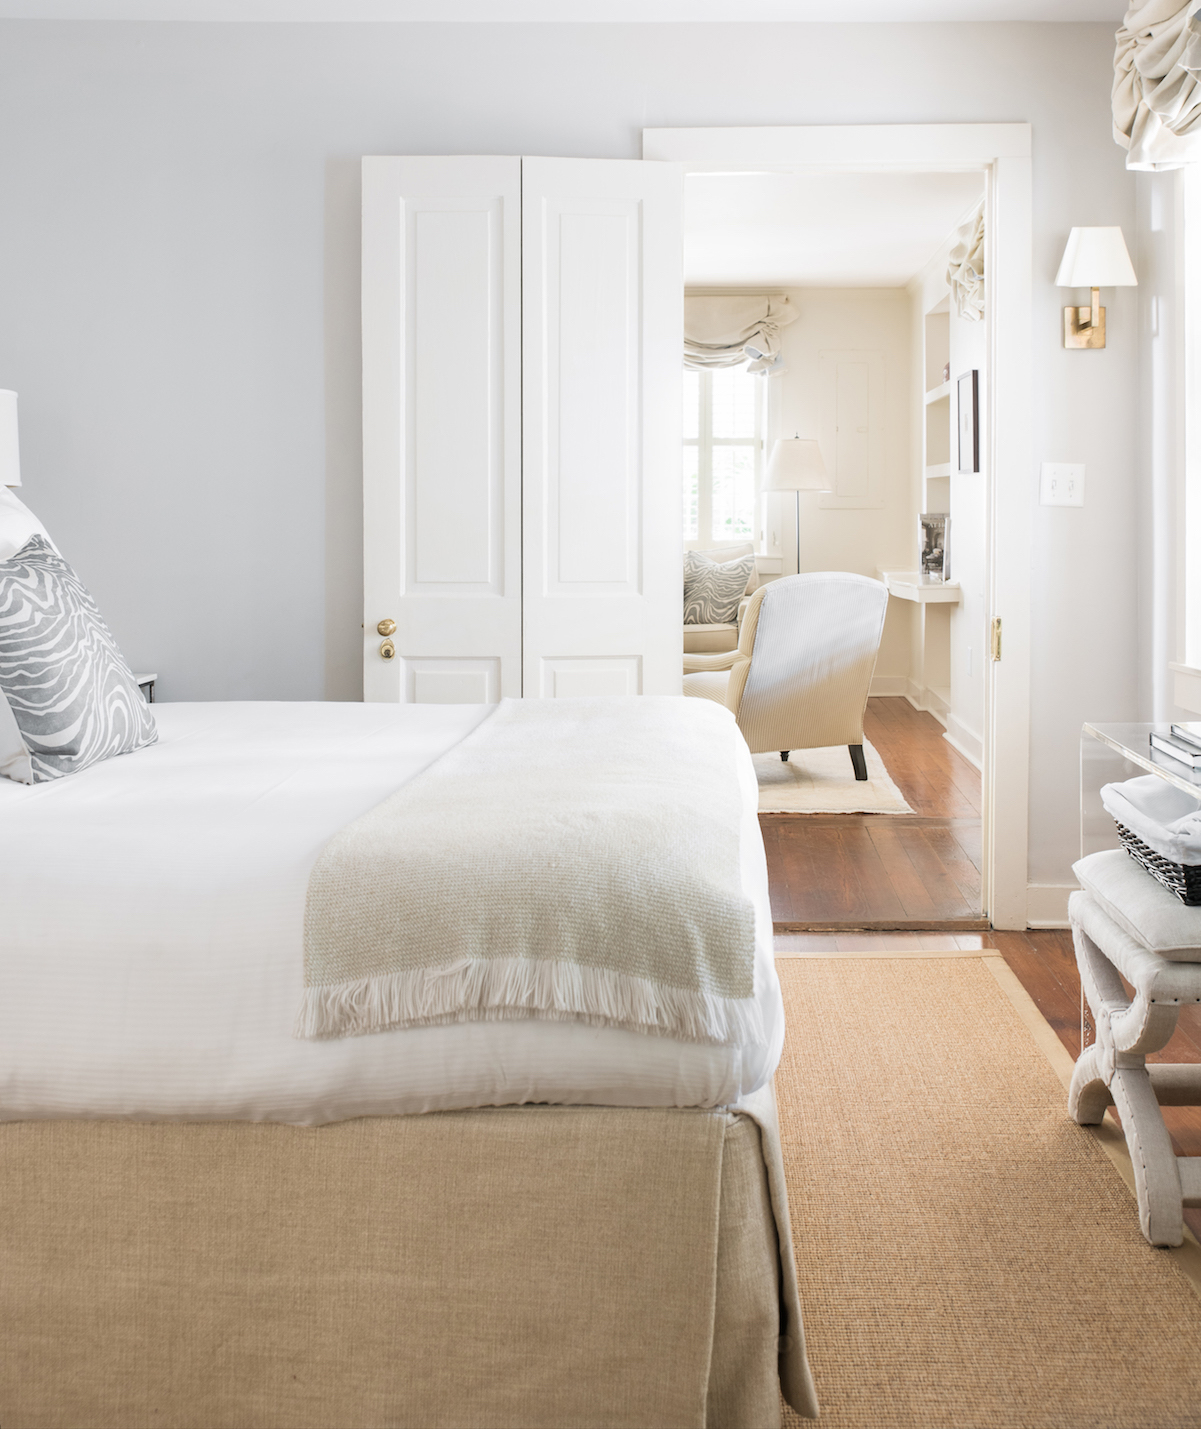 Watch 8 Changes Your Bedroom Needs So You Can Sleep Better video